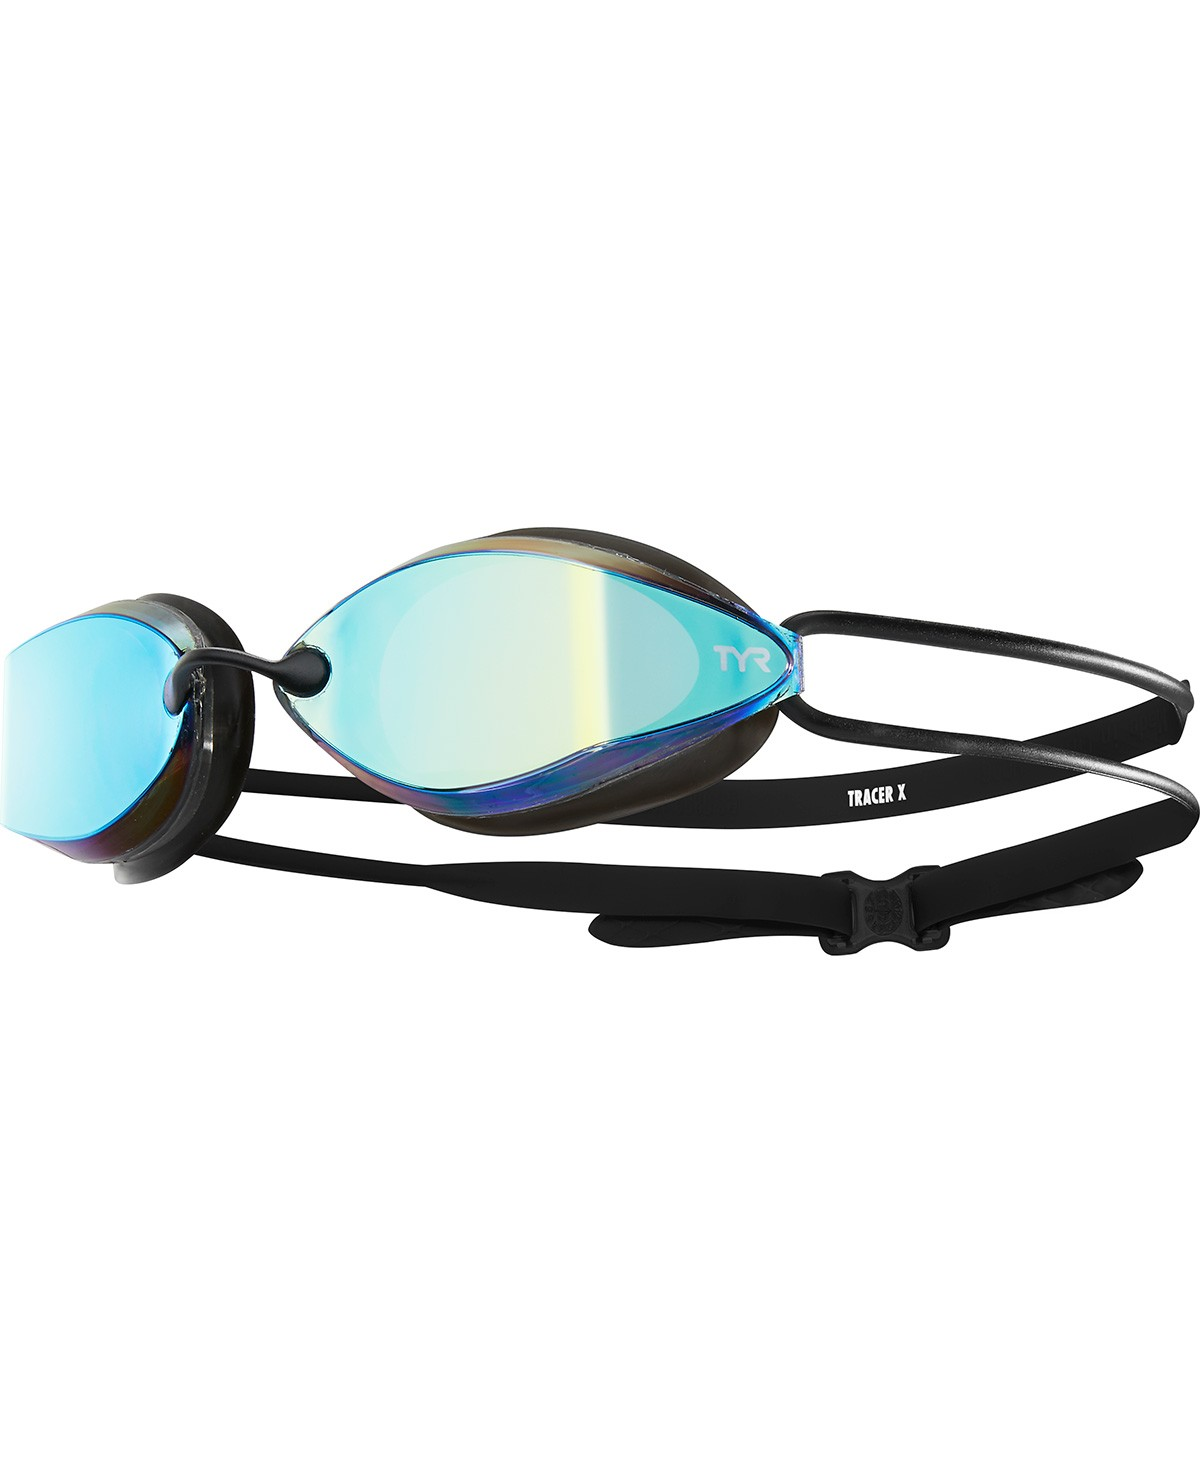 TYR Tracer-X Mirrored Goggles